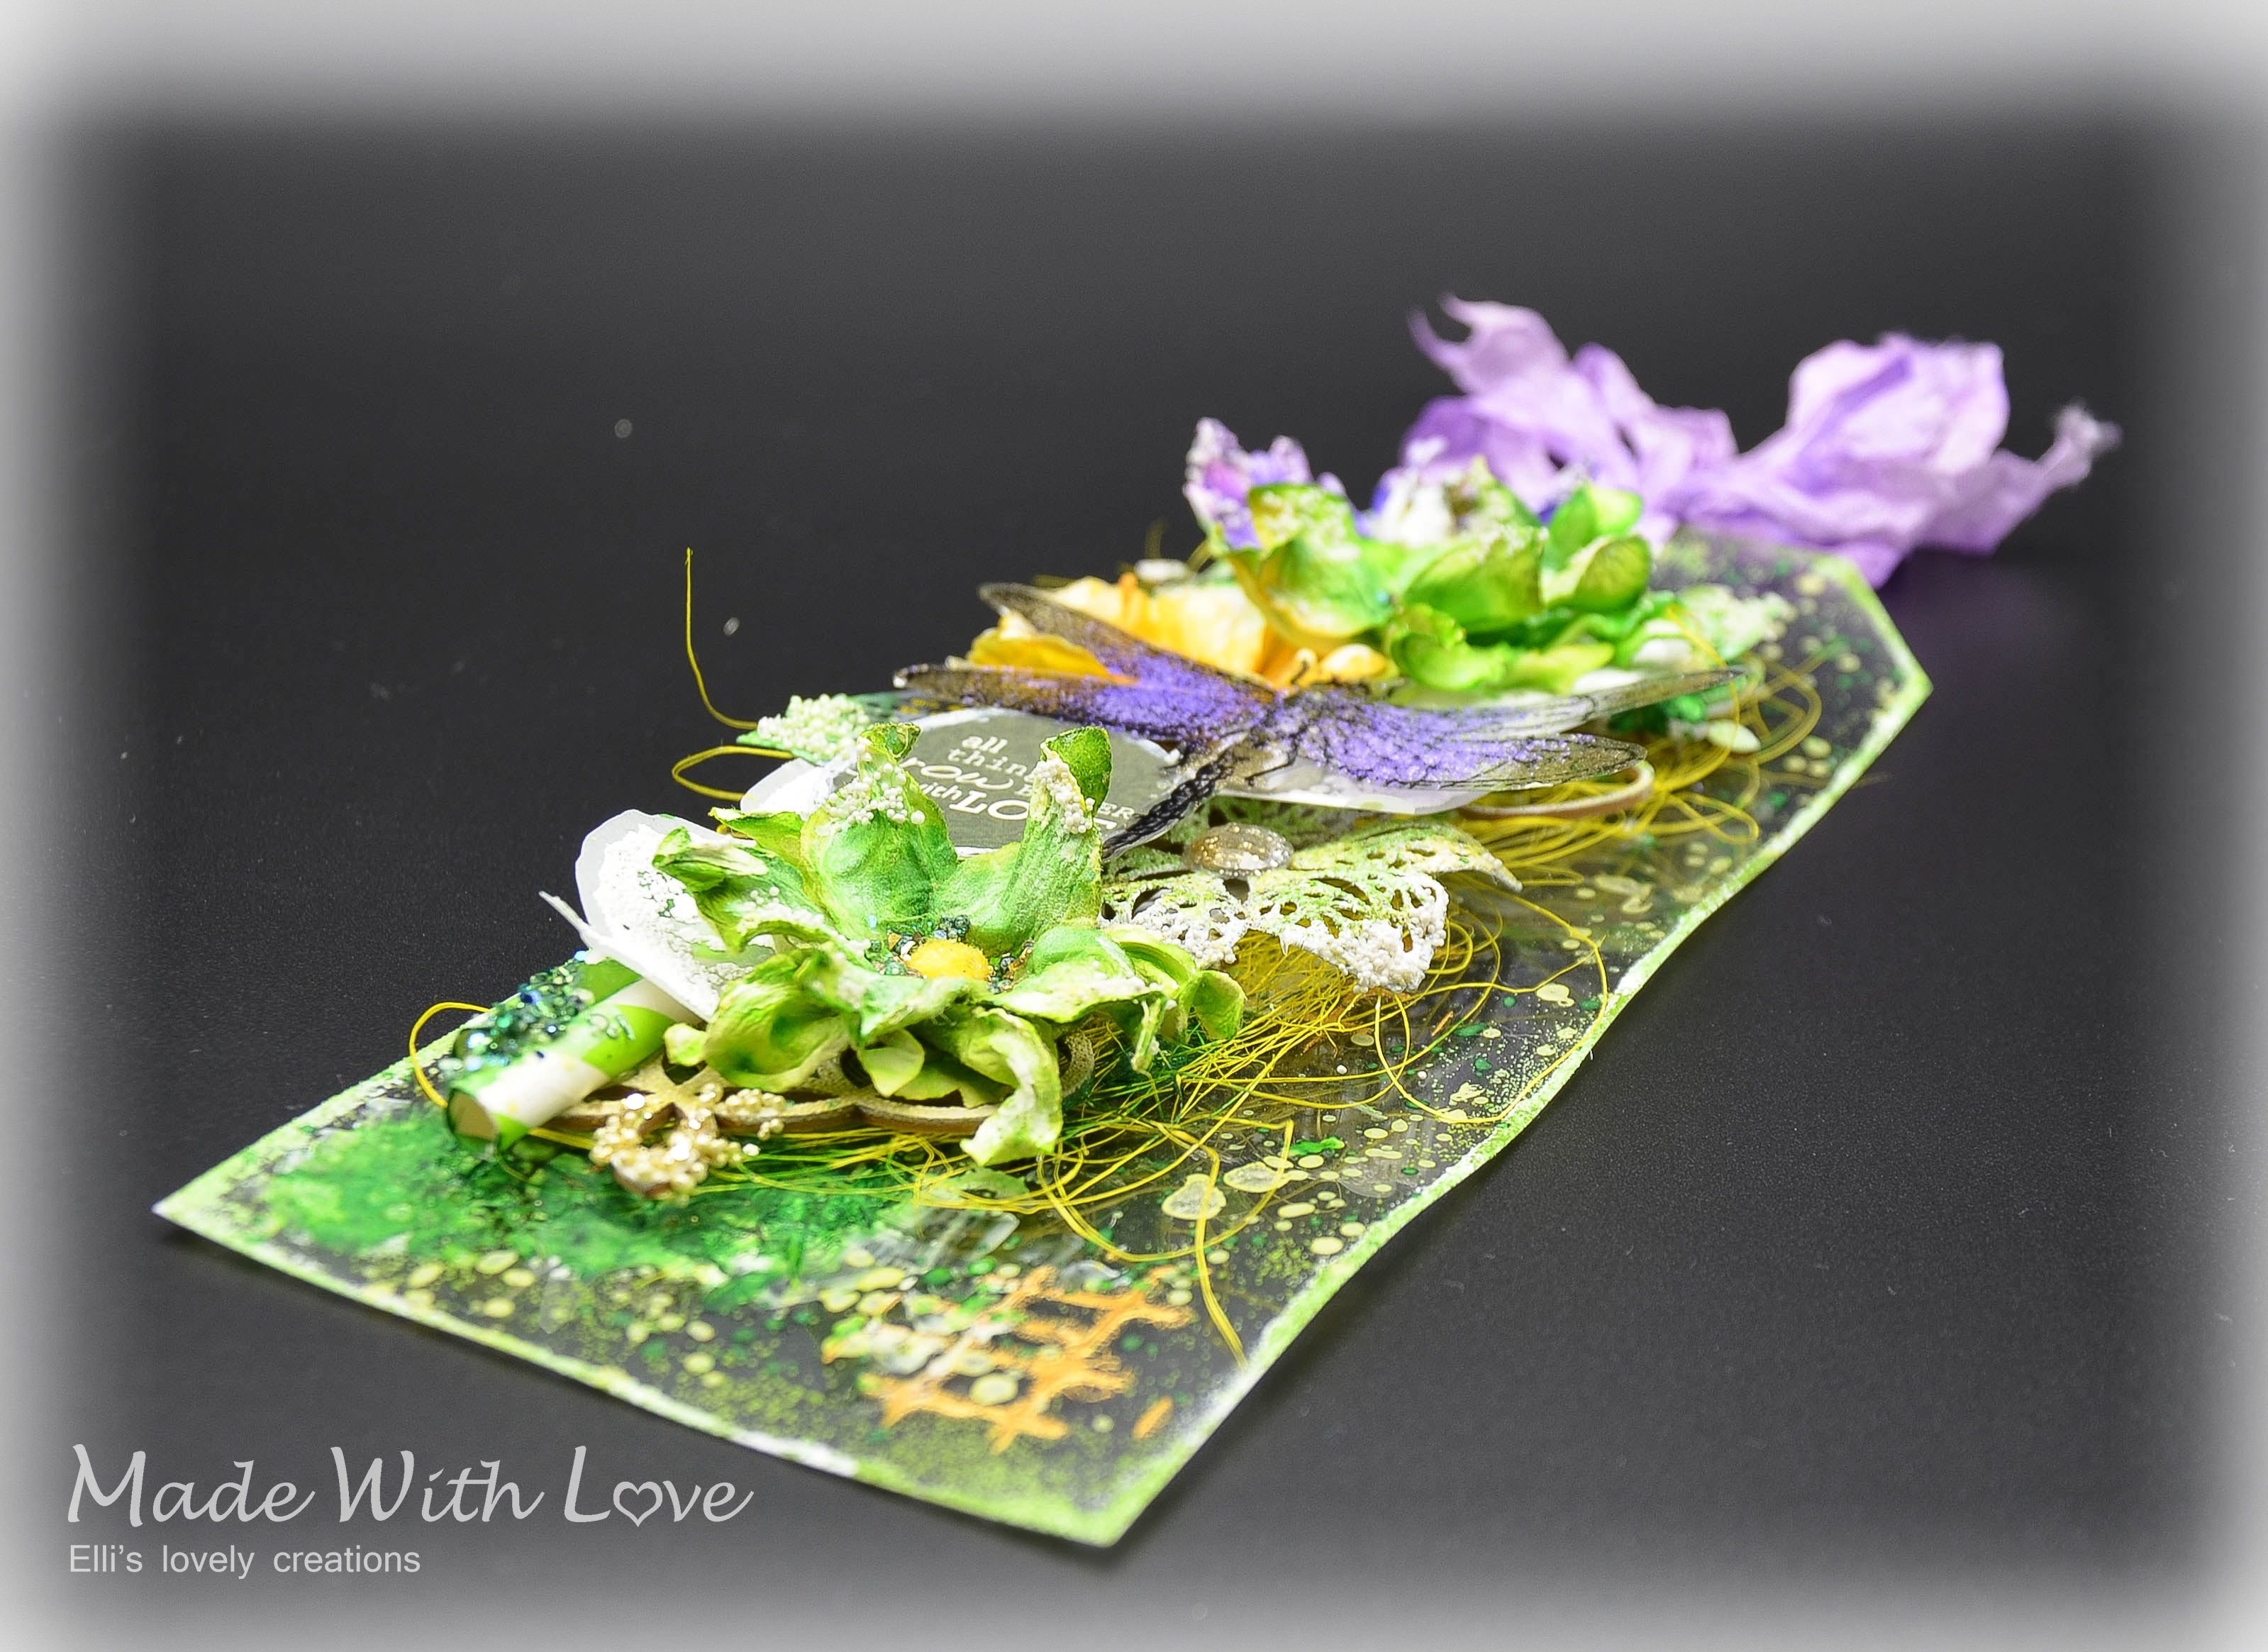 Mixed Media Spring Clear Acetate Tag Grow With Love 10